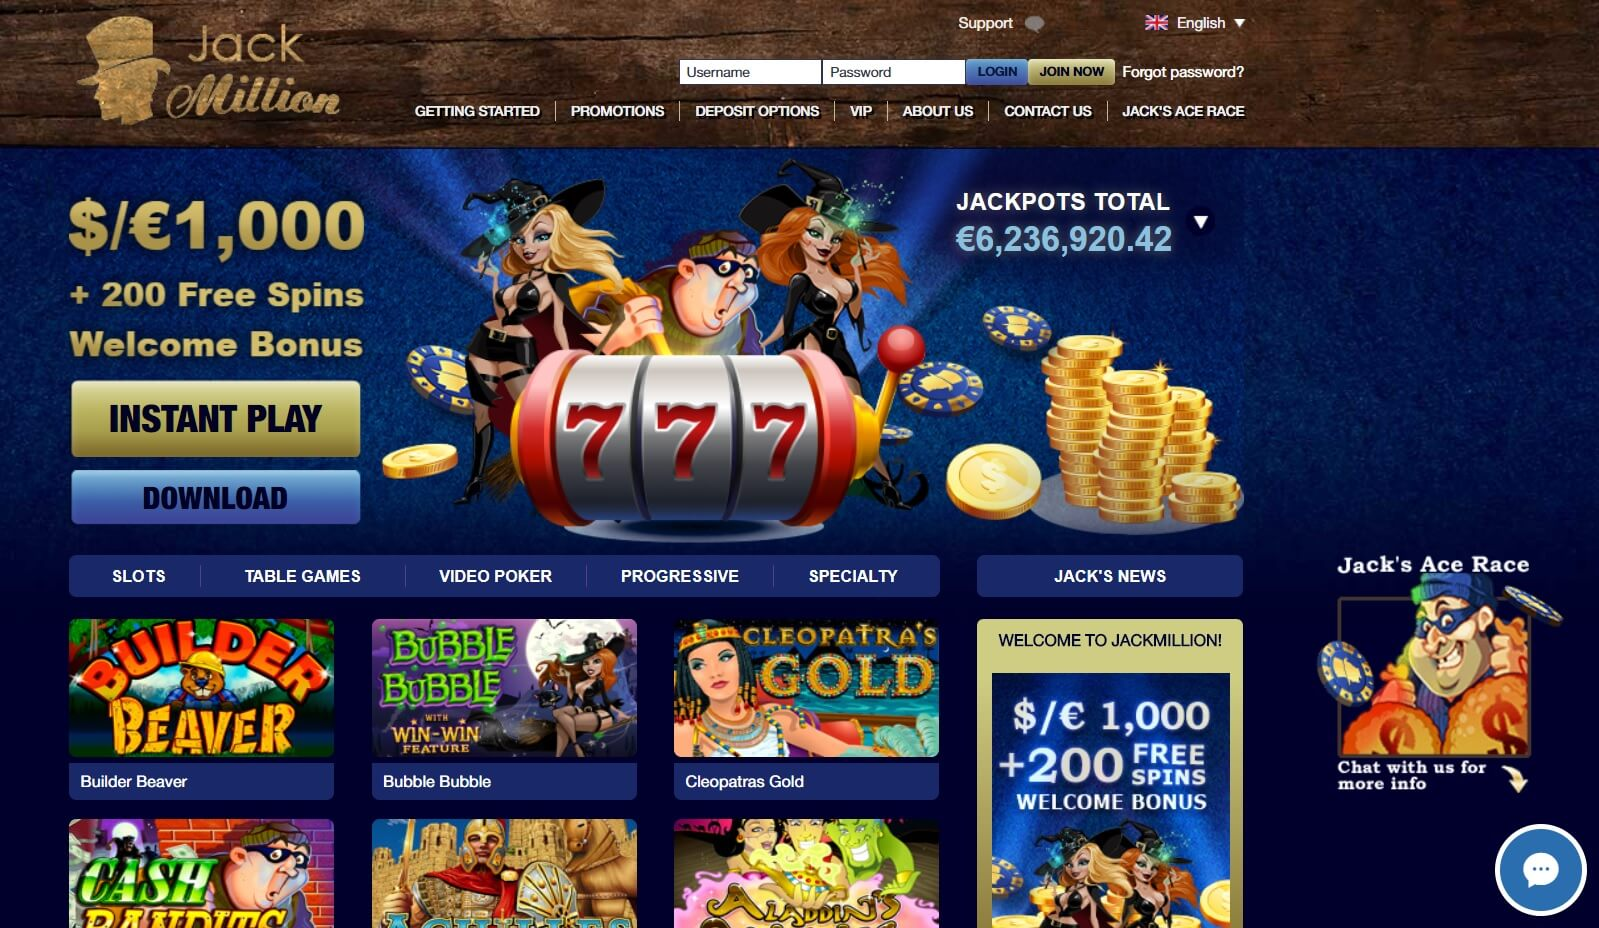 jackmillion casino pokies and casino games screen shot